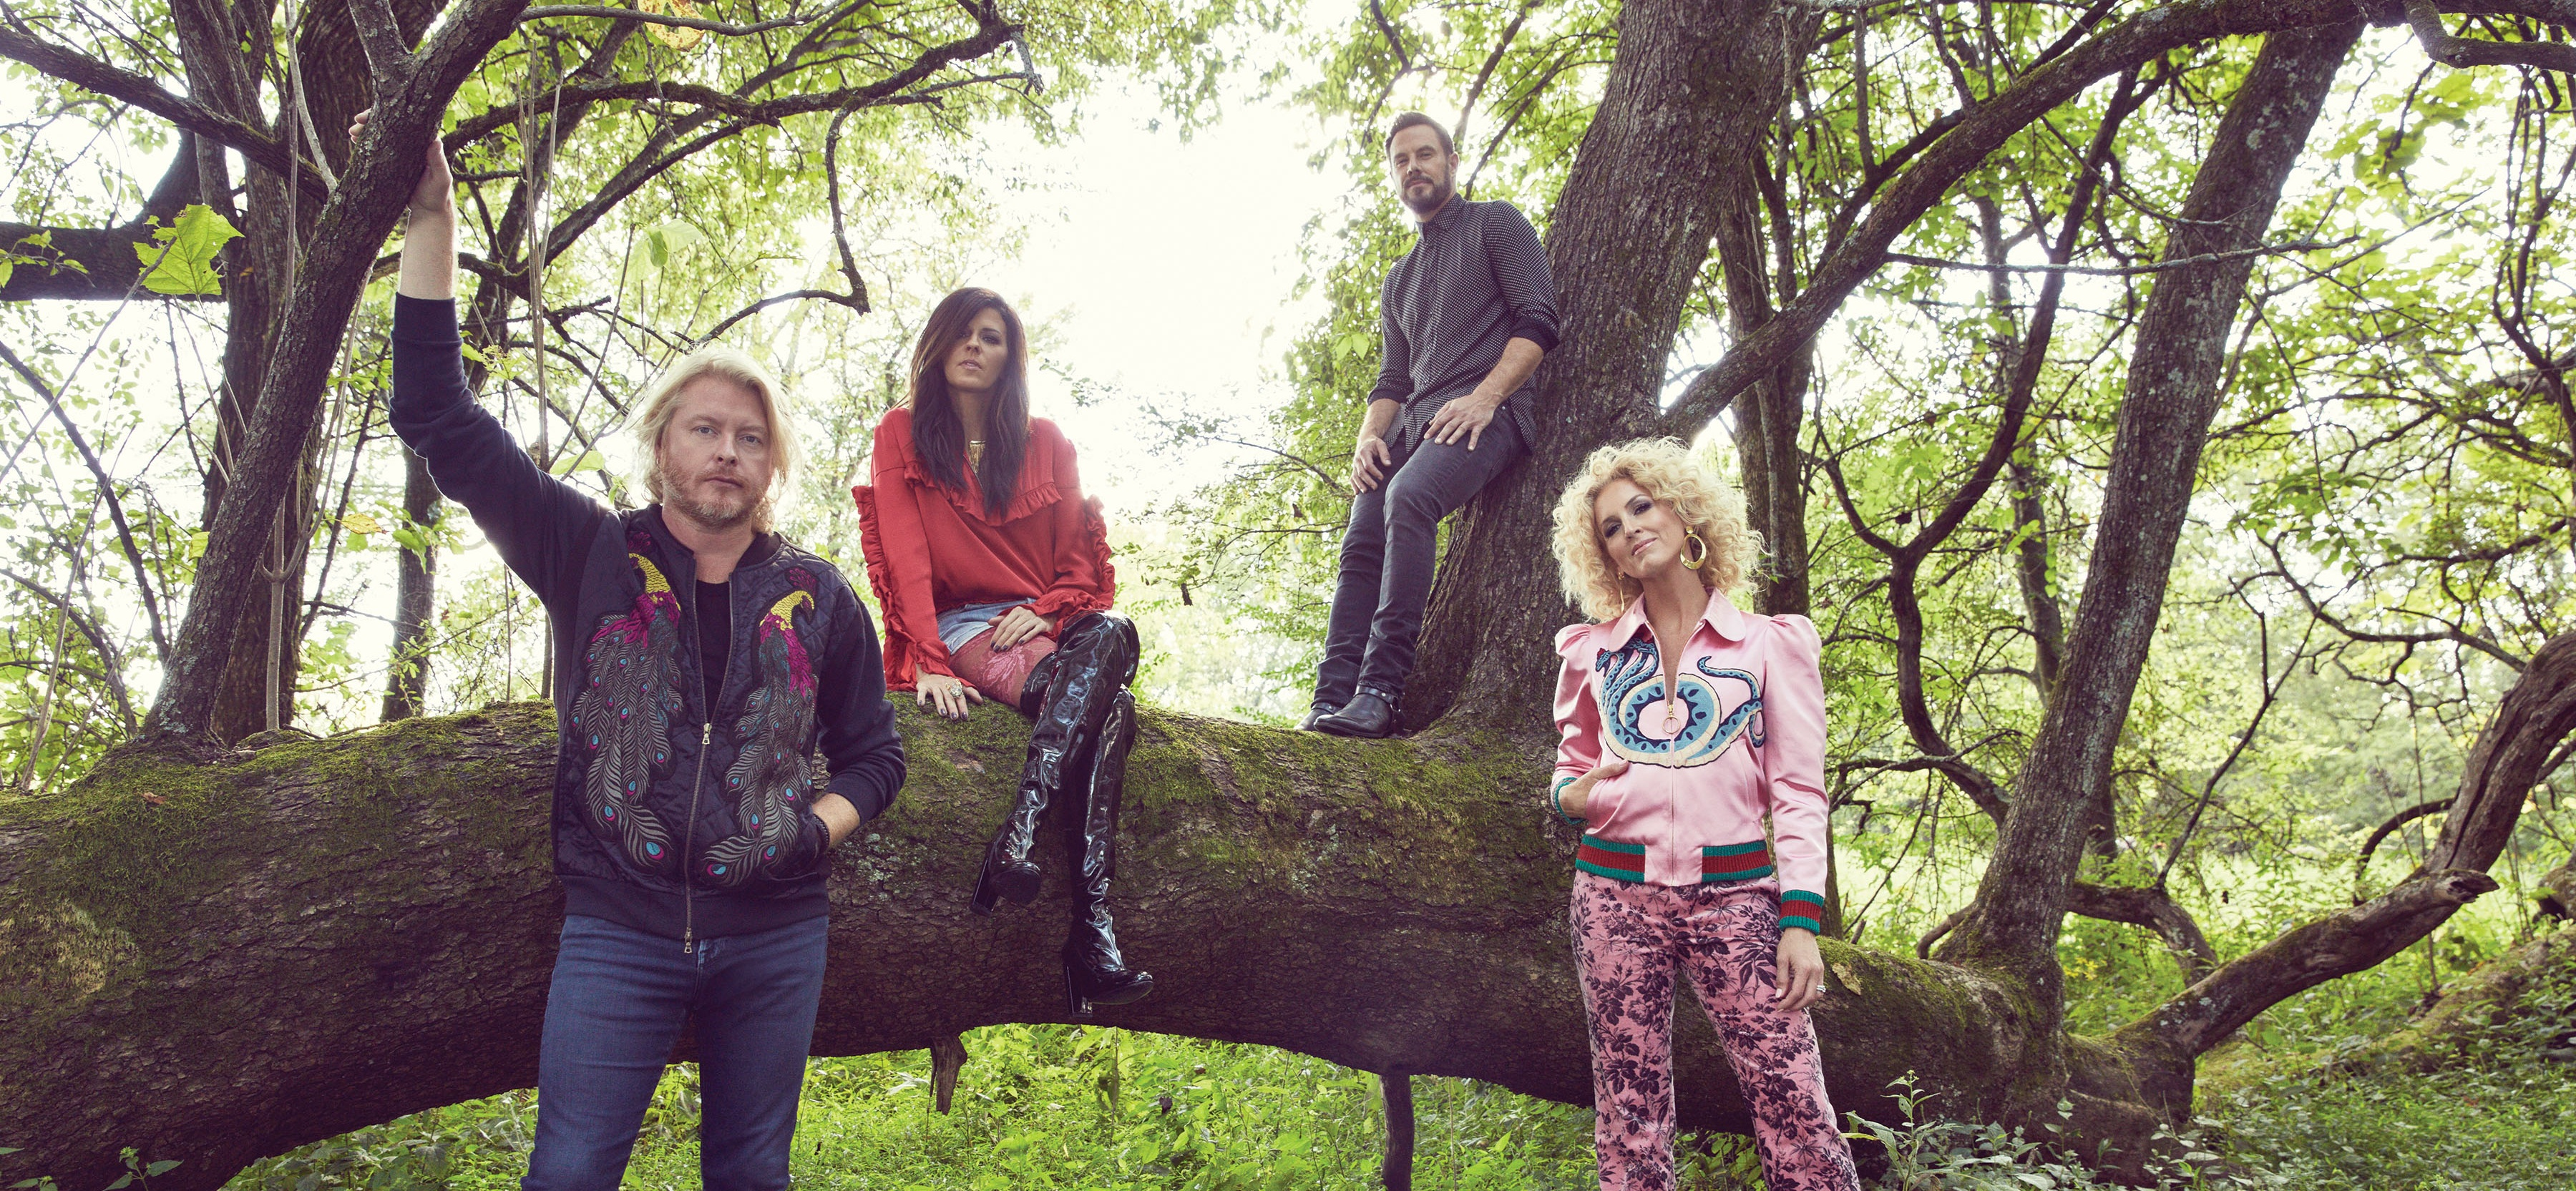 LITTLE BIG TOWN SCORES BIG AT THIS YEAR'S CMA AWARDS.